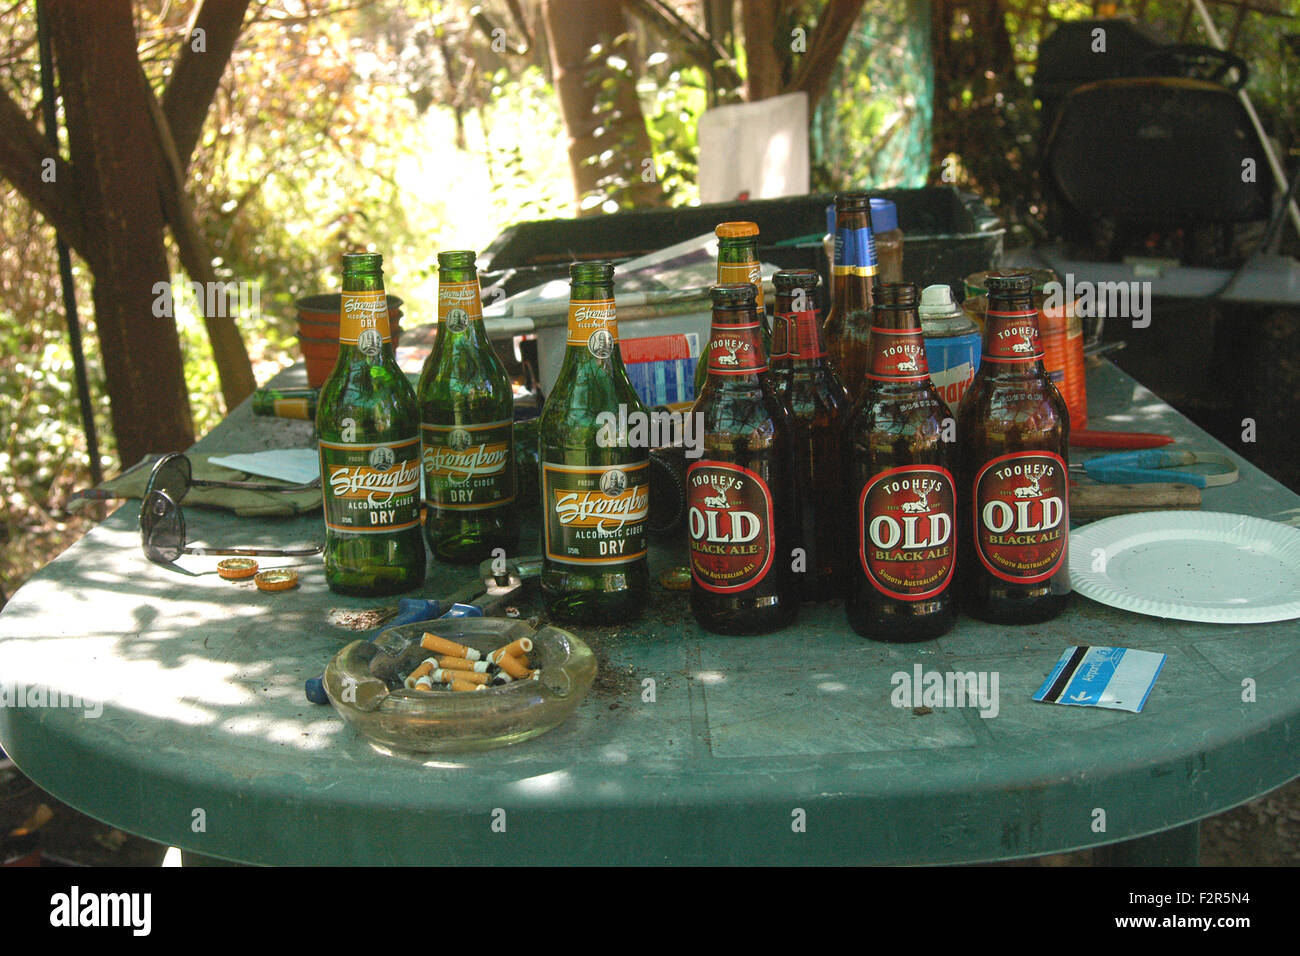 Outdoor table containing empty beer bottles and ash tray of cigarette butts. - Stock Image